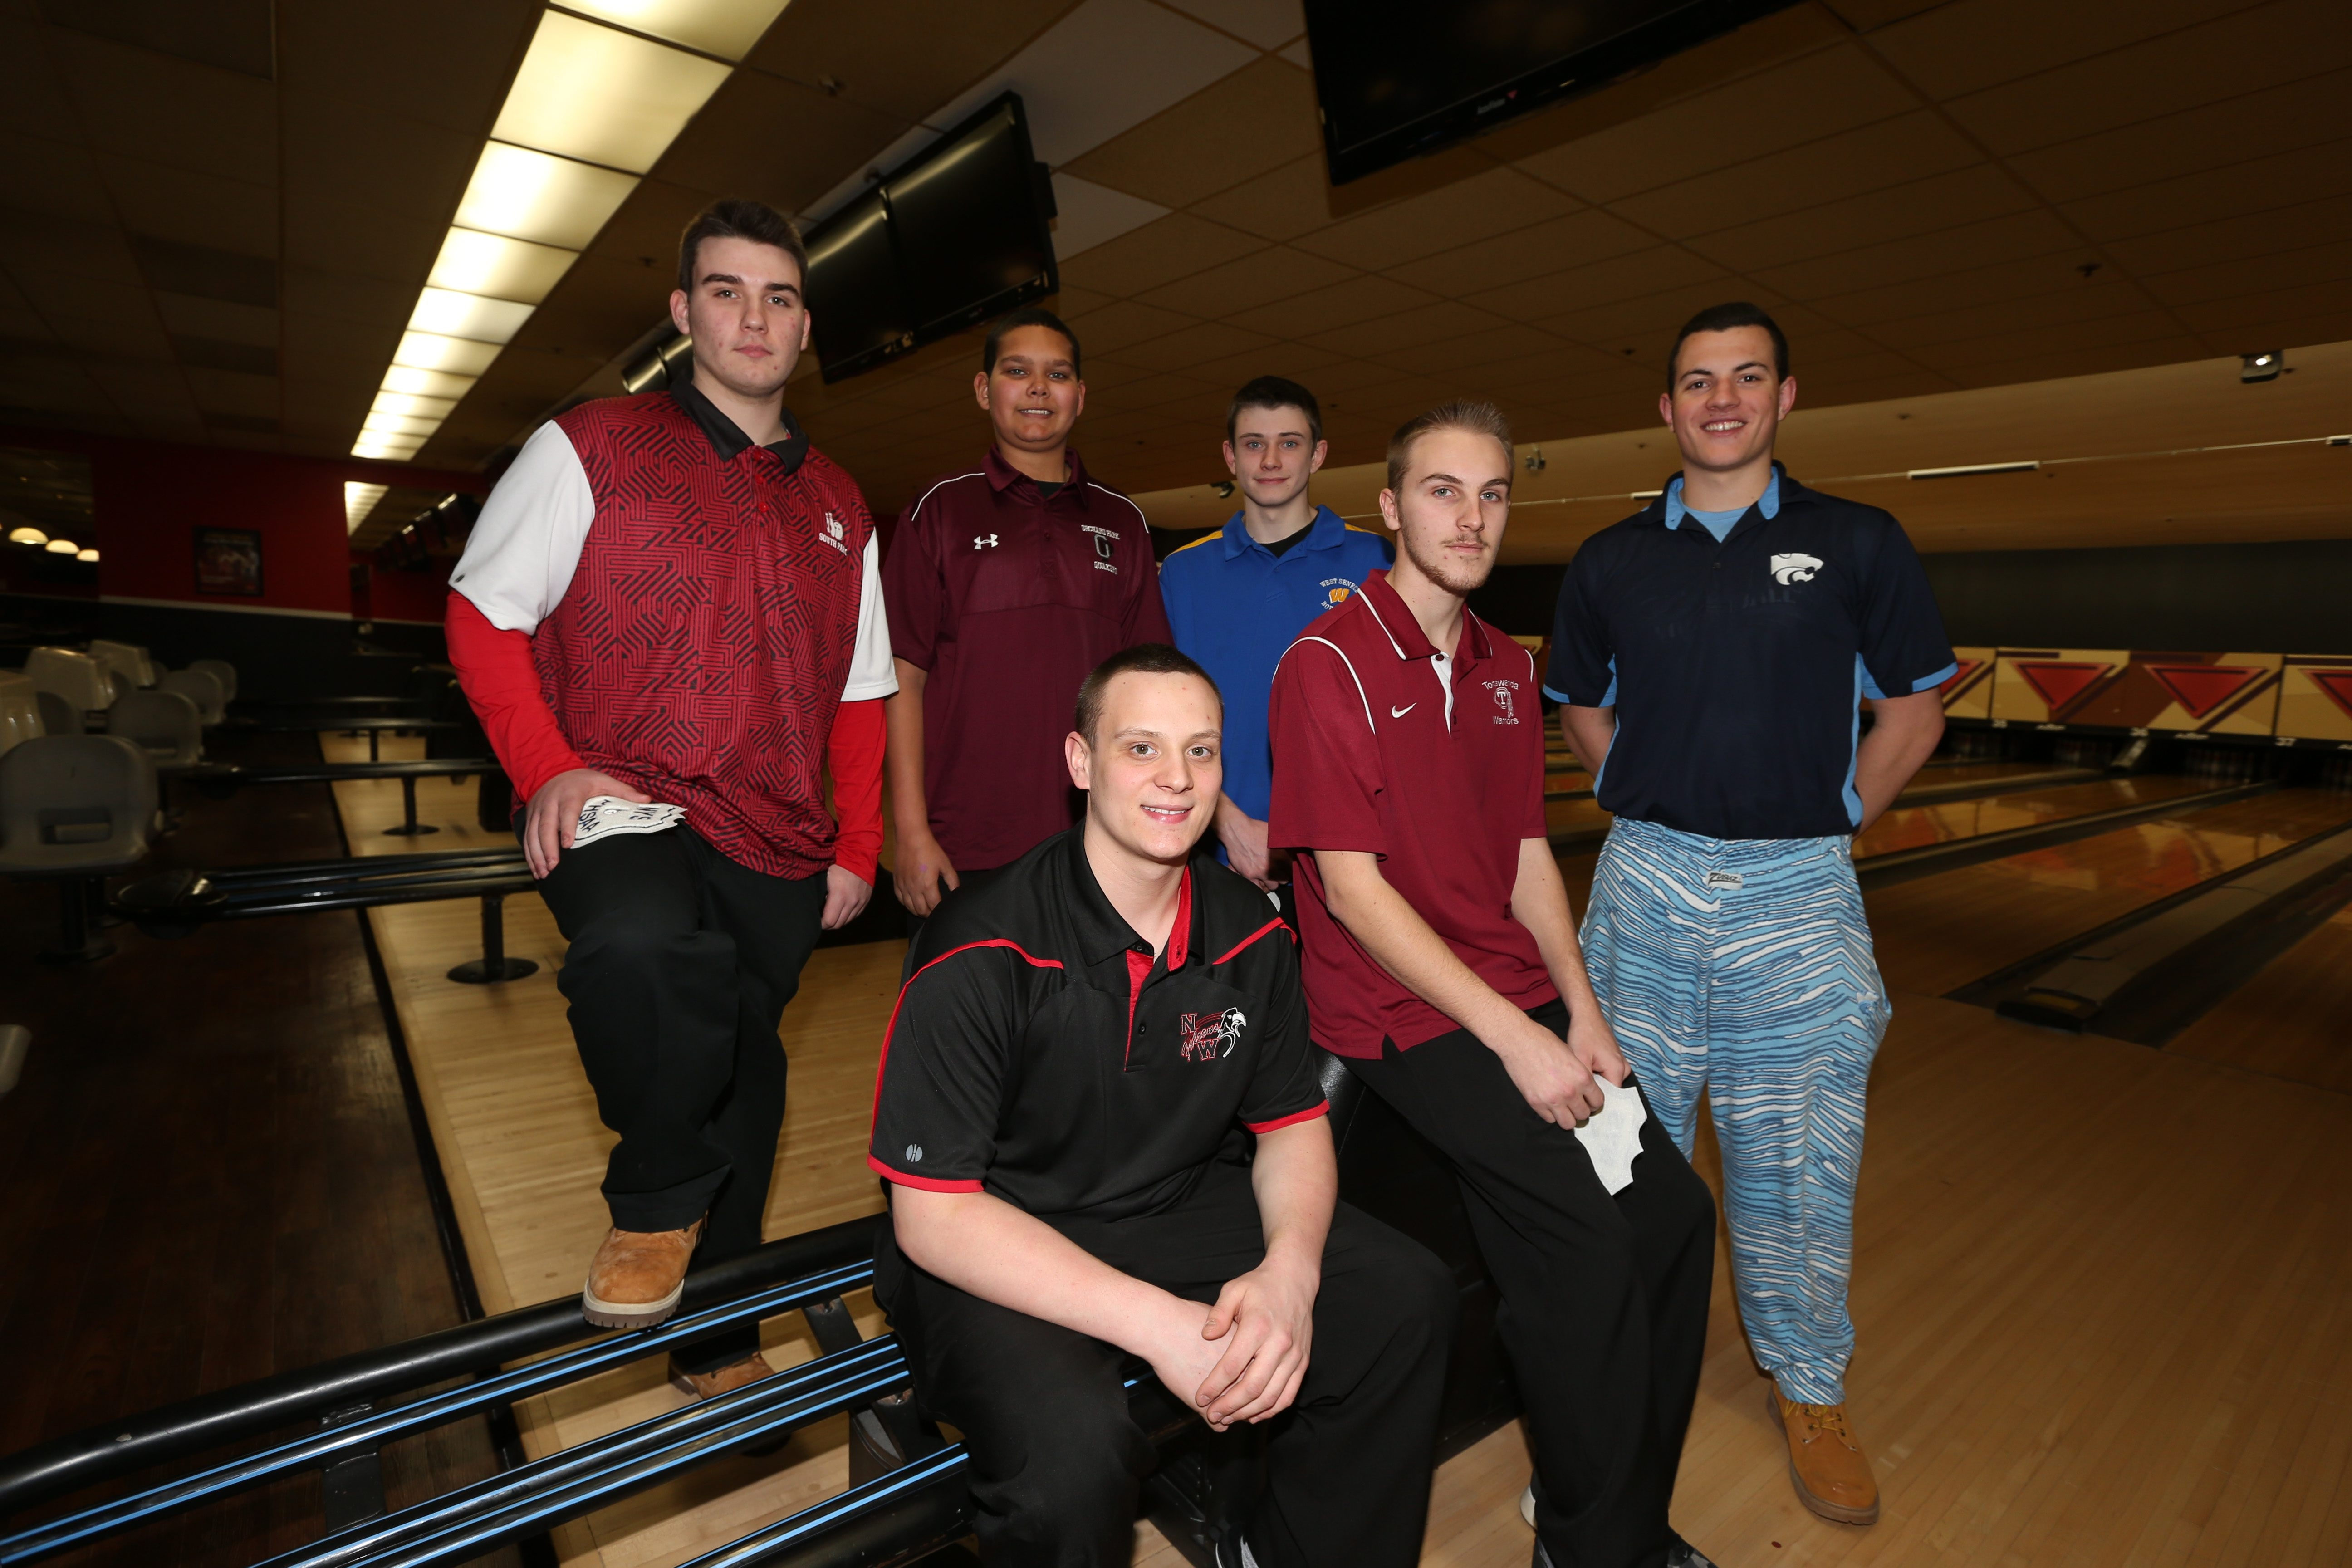 The six individuals that will return to Airport Lanes for the state tournament in three weeks are (left to right): Nate Maloney (Niagara-Wheatfield), Josh Large (Tonawanda), Joe Scapillato (Depew), Thomas Kowal (South Park), Tom Klenke (Orchard Park) and Andrew Burckhalter (West Seneca West).